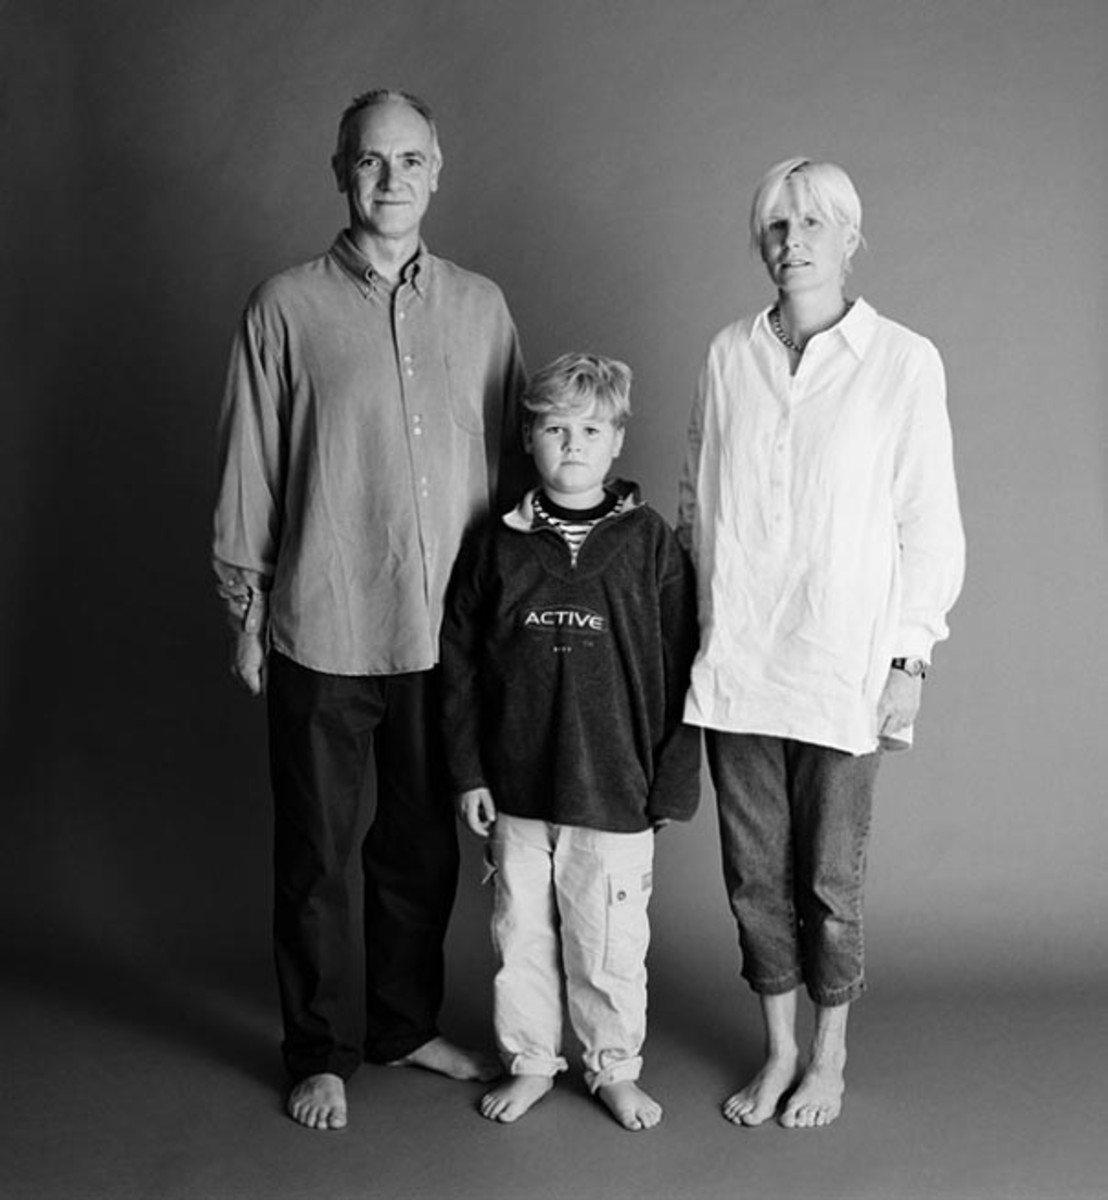 the-family-aging-photo-series-8